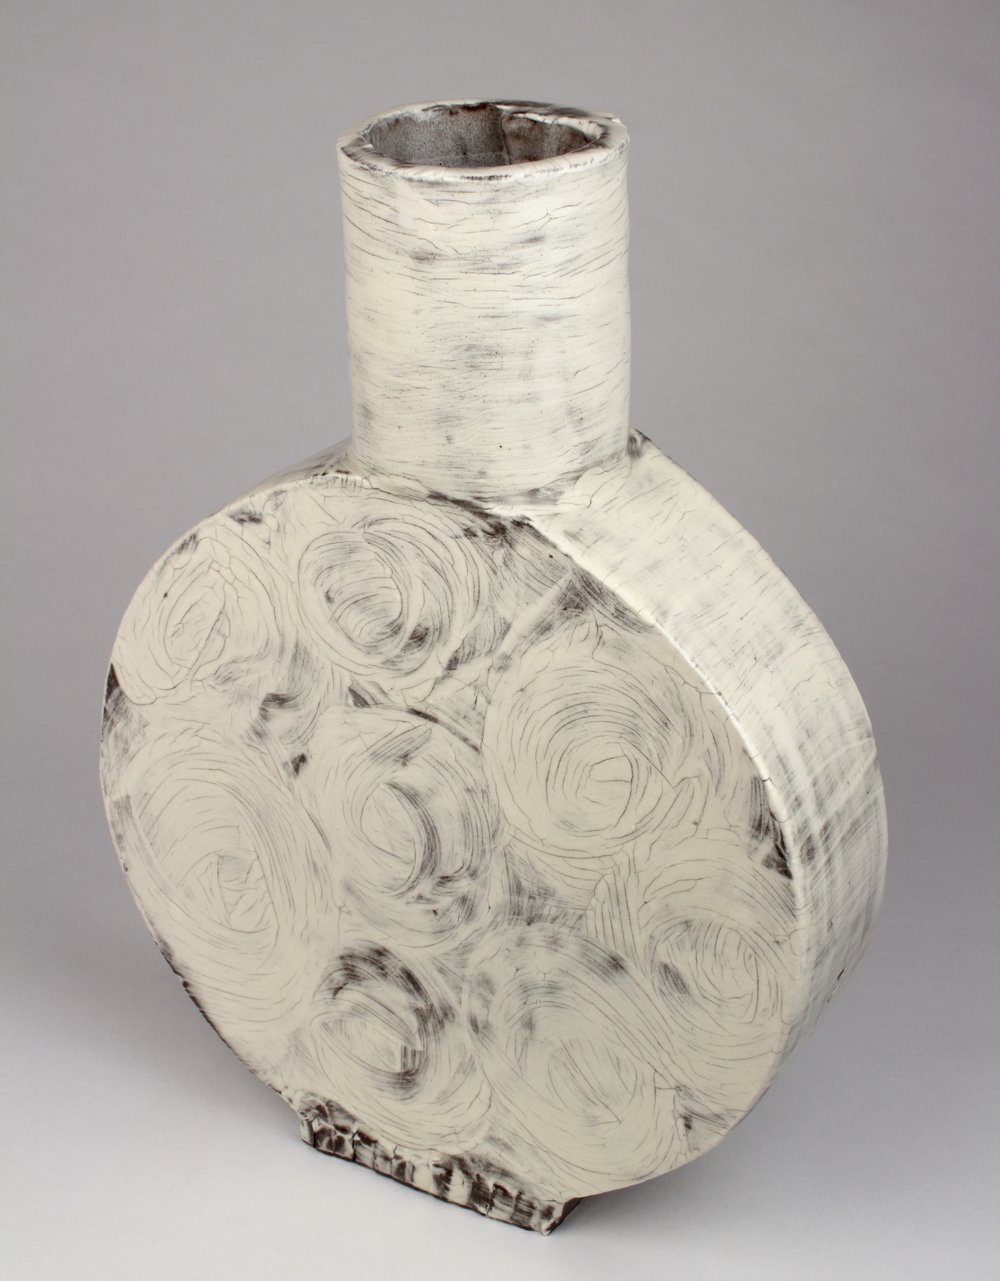 """White Floral Vase   Stoneware, slip and glaze  12 1/2"""" x 9 1/4"""" x 2 3/4""""  $400  Click image to enlarge   Inquire."""